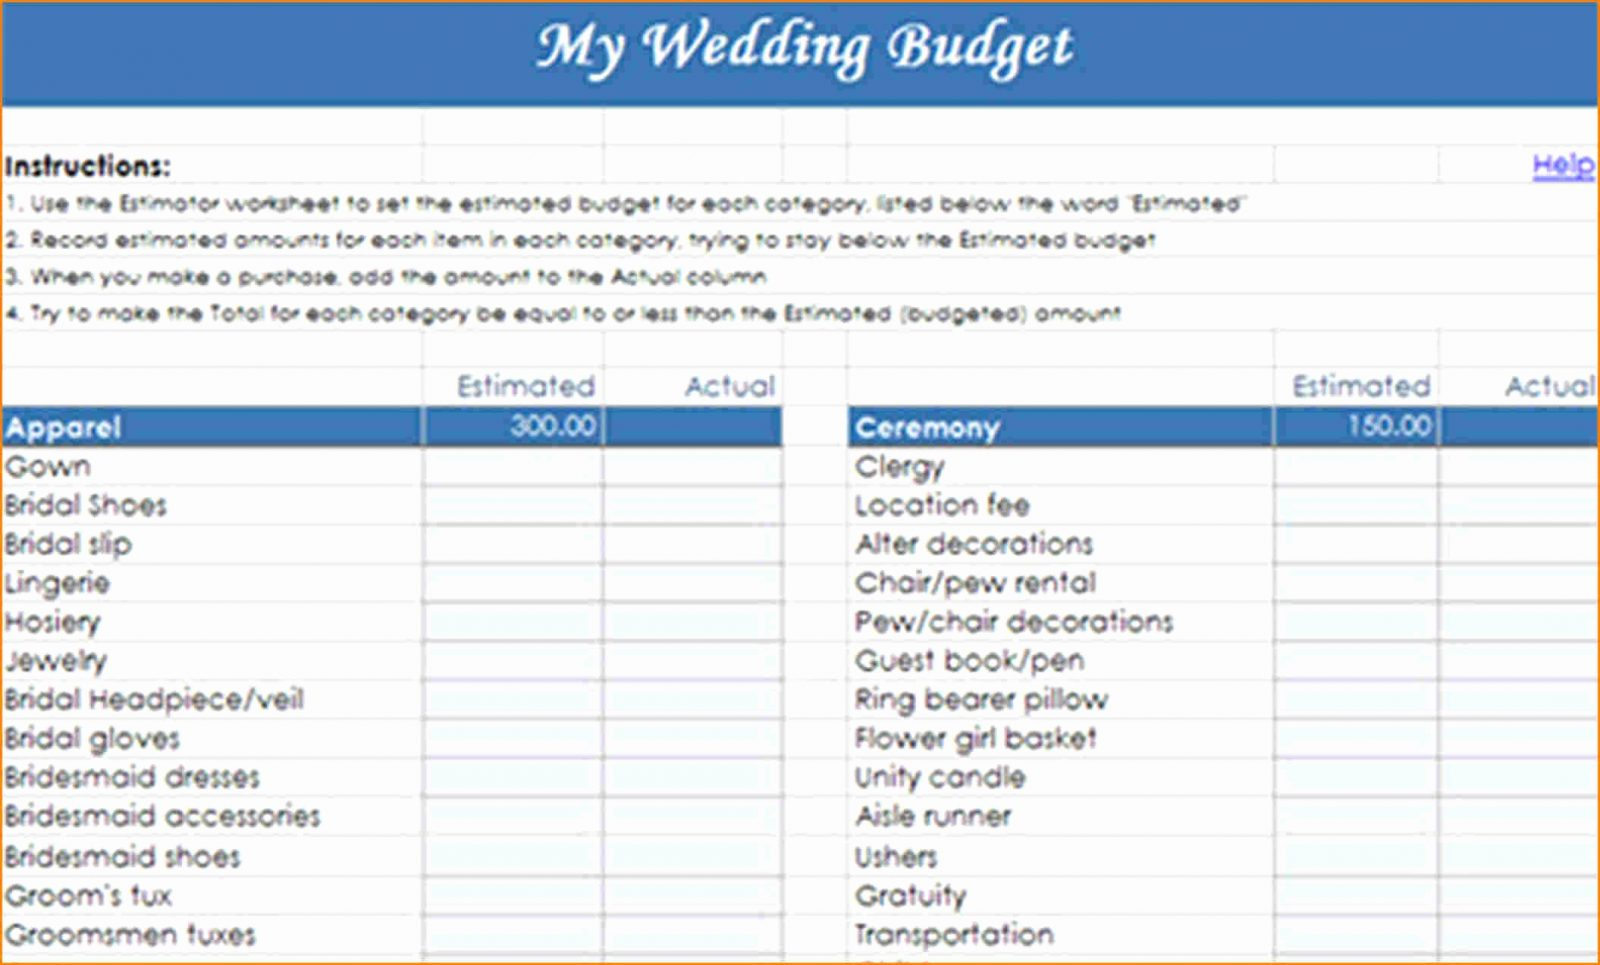 How To Make A Wedding Budget Spreadsheet